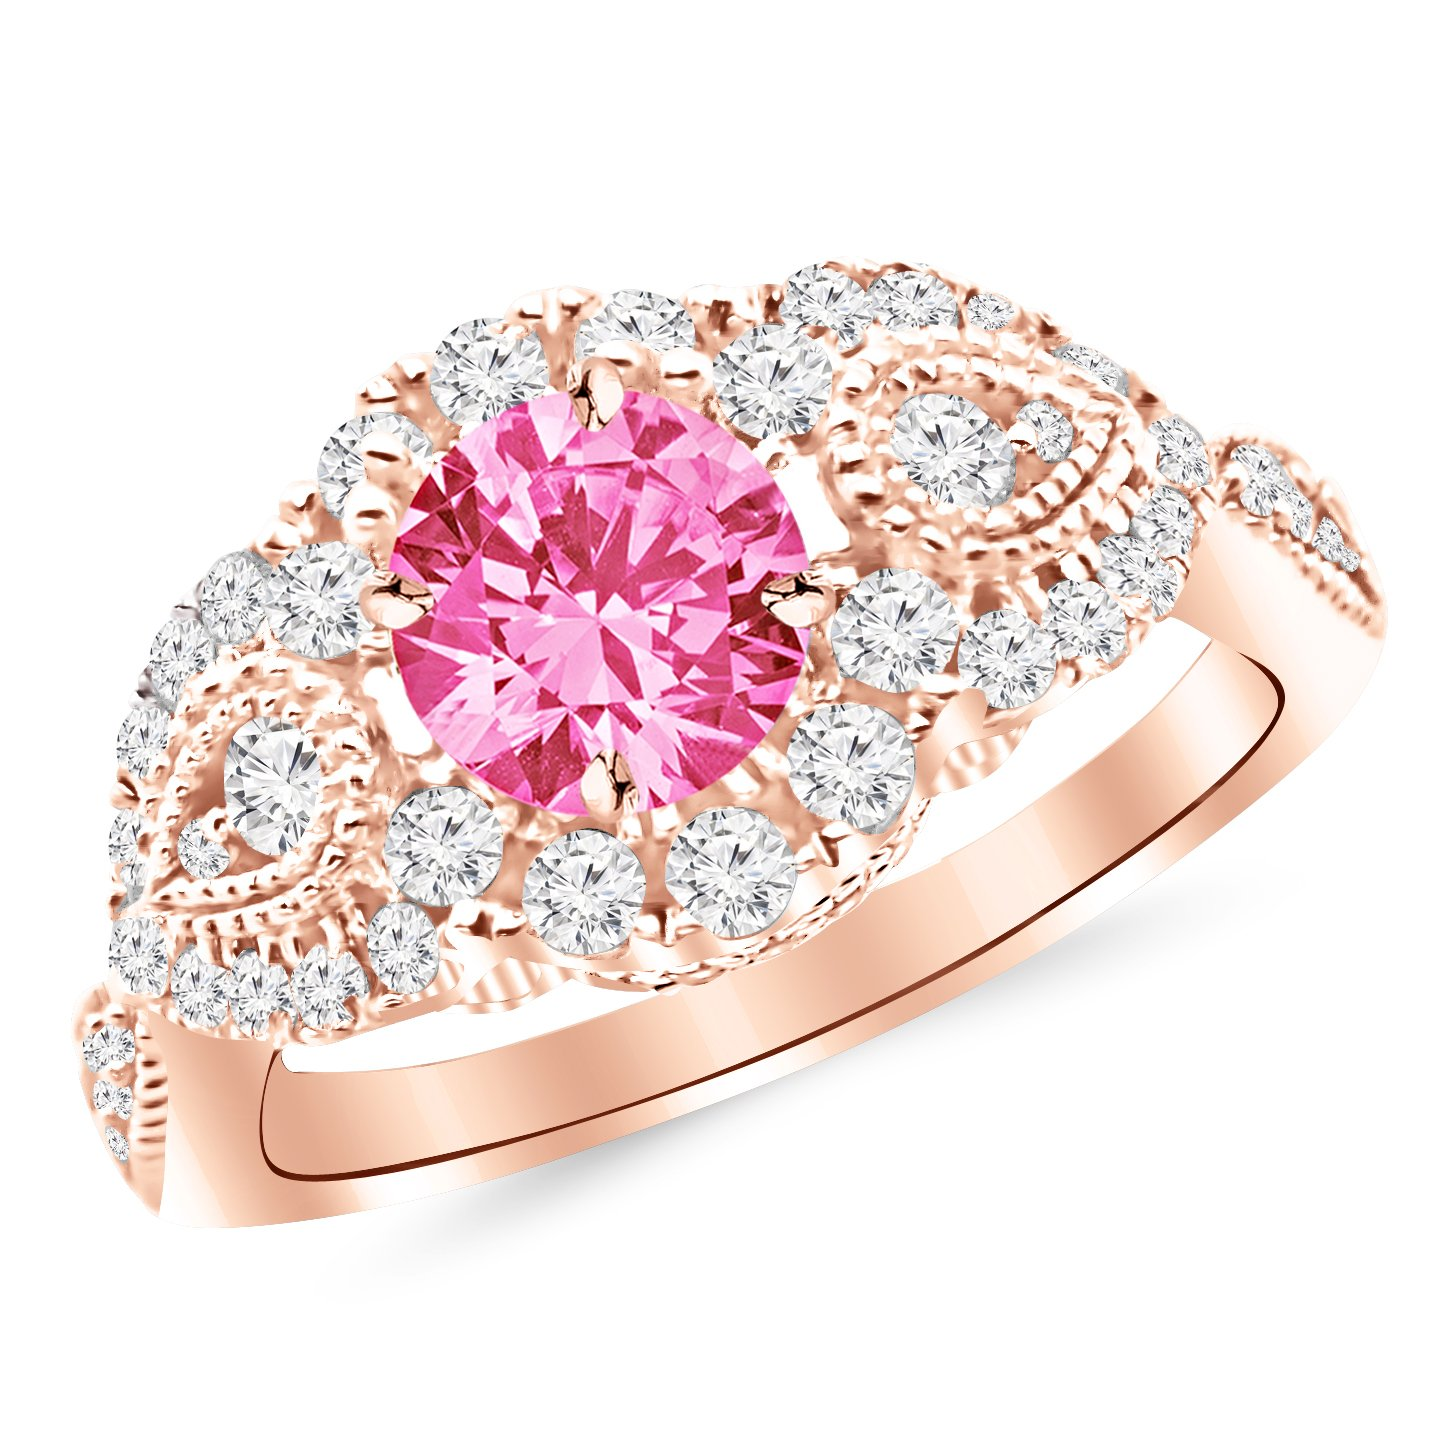 Designer Vintage Halo Diamond Engagement Ring with a 1 Carat Pink ...